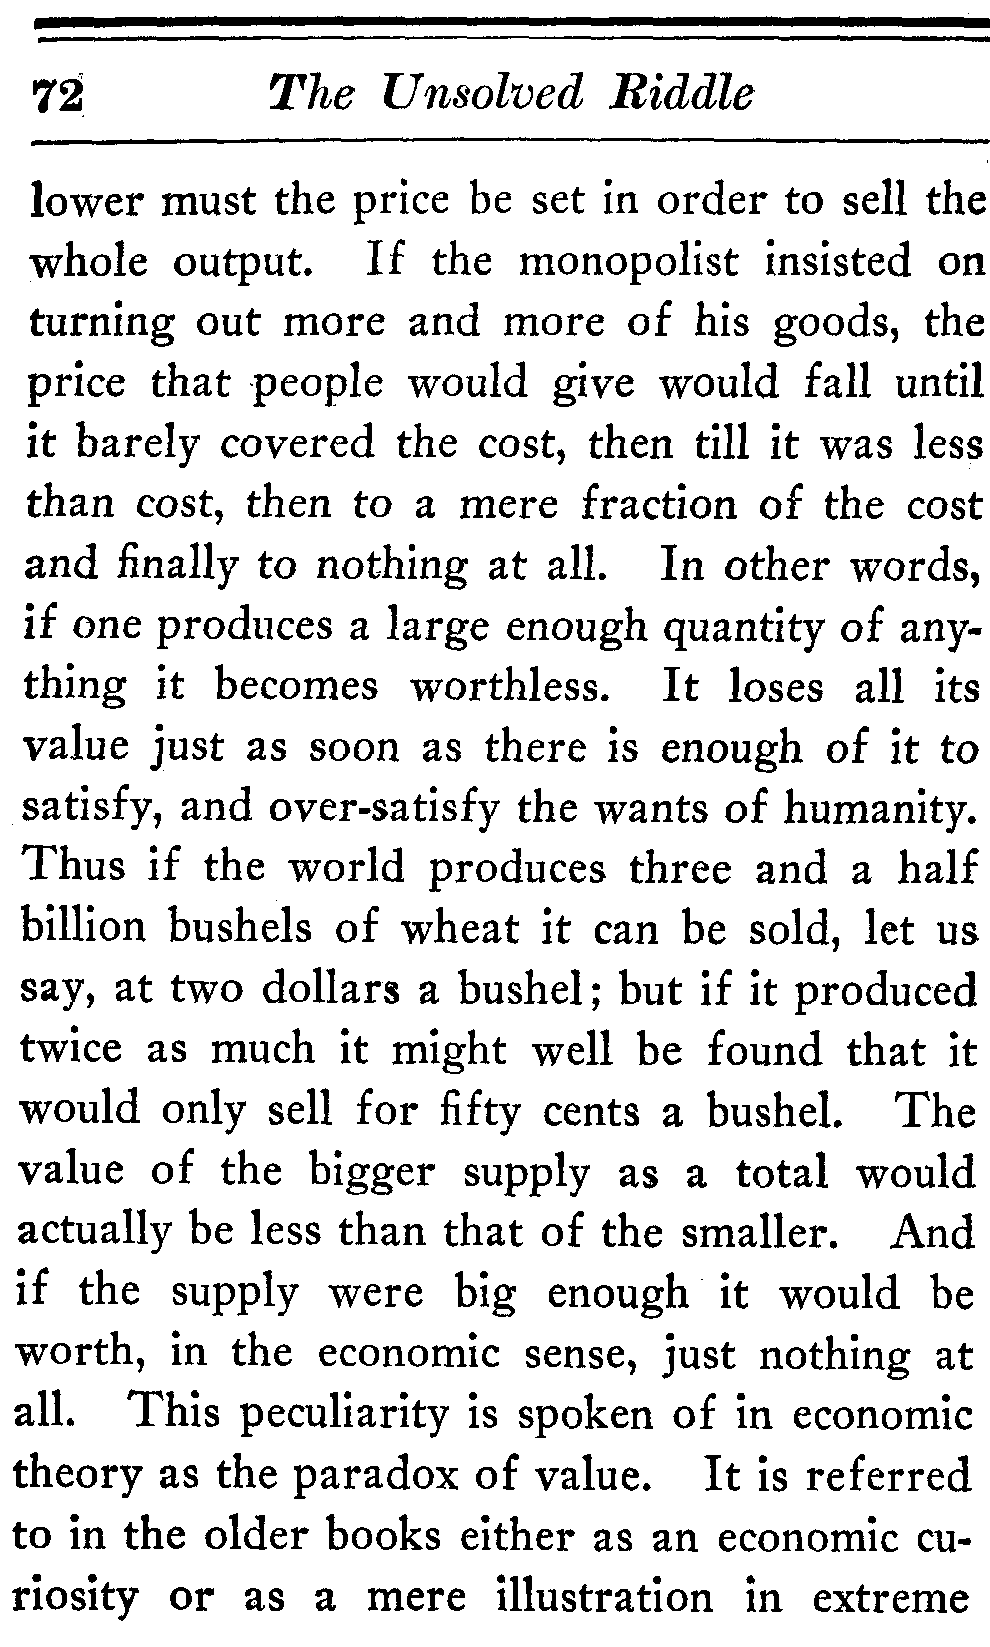 The project gutenberg ebook of the unsolved riddle of social justice if the monopolist insisted on turning out more and more of his goods the price that people would give fandeluxe Gallery